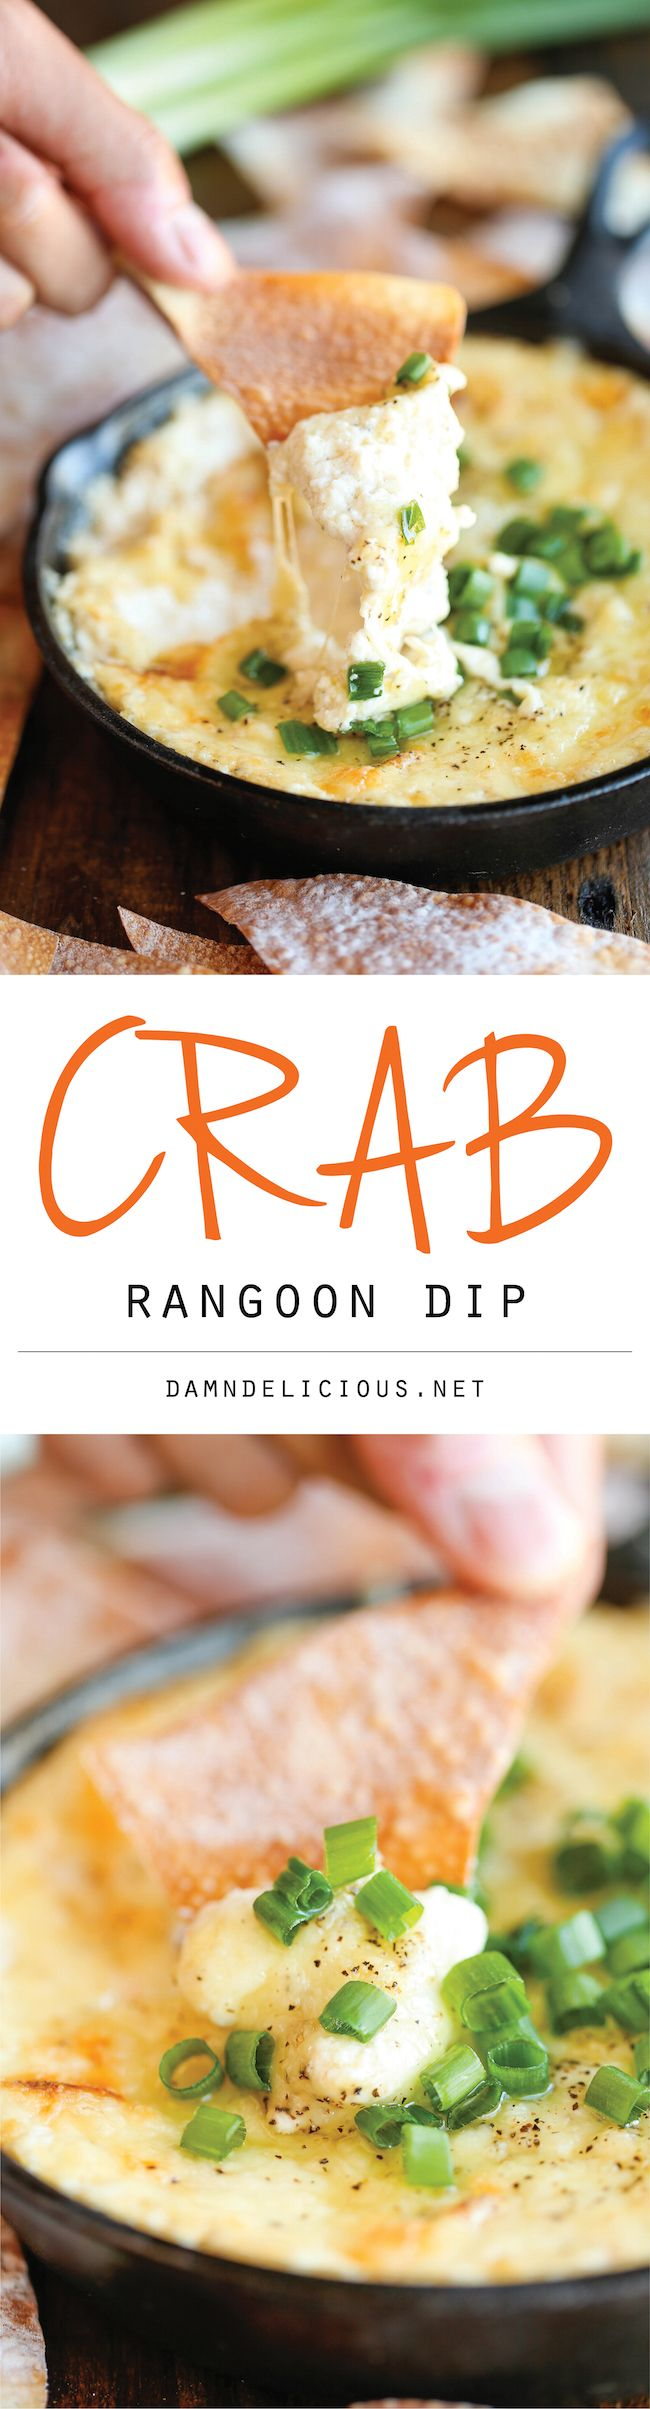 Crab Rangoon Dip - A take-out favorite made into the creamiest, cheesiest dip of all, served with the easiest homemade wonton chips!